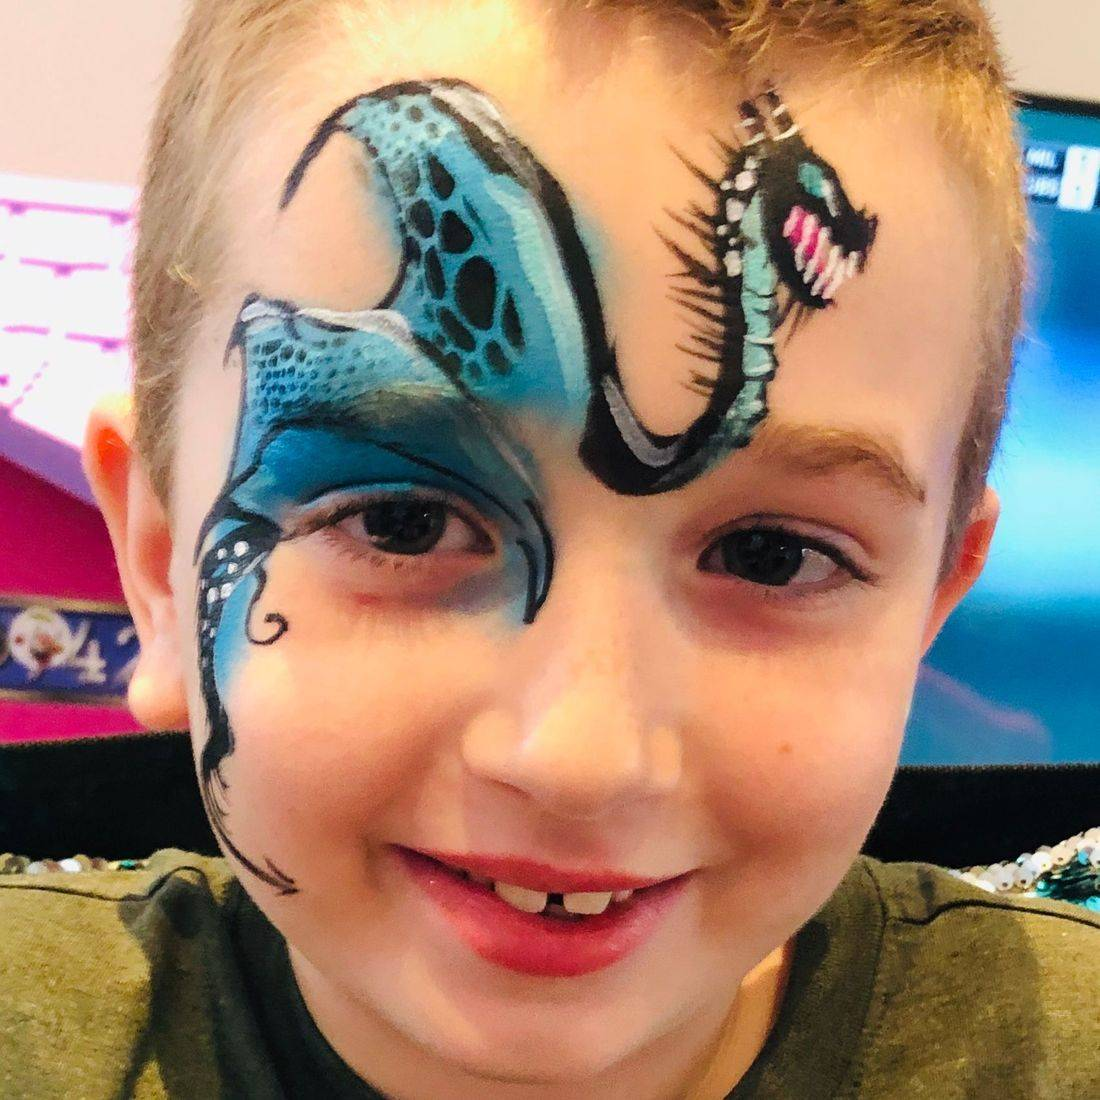 birthday parties for kids, butterflies, face painting, Chicago face painting, body art, corporate face painting events, festivals